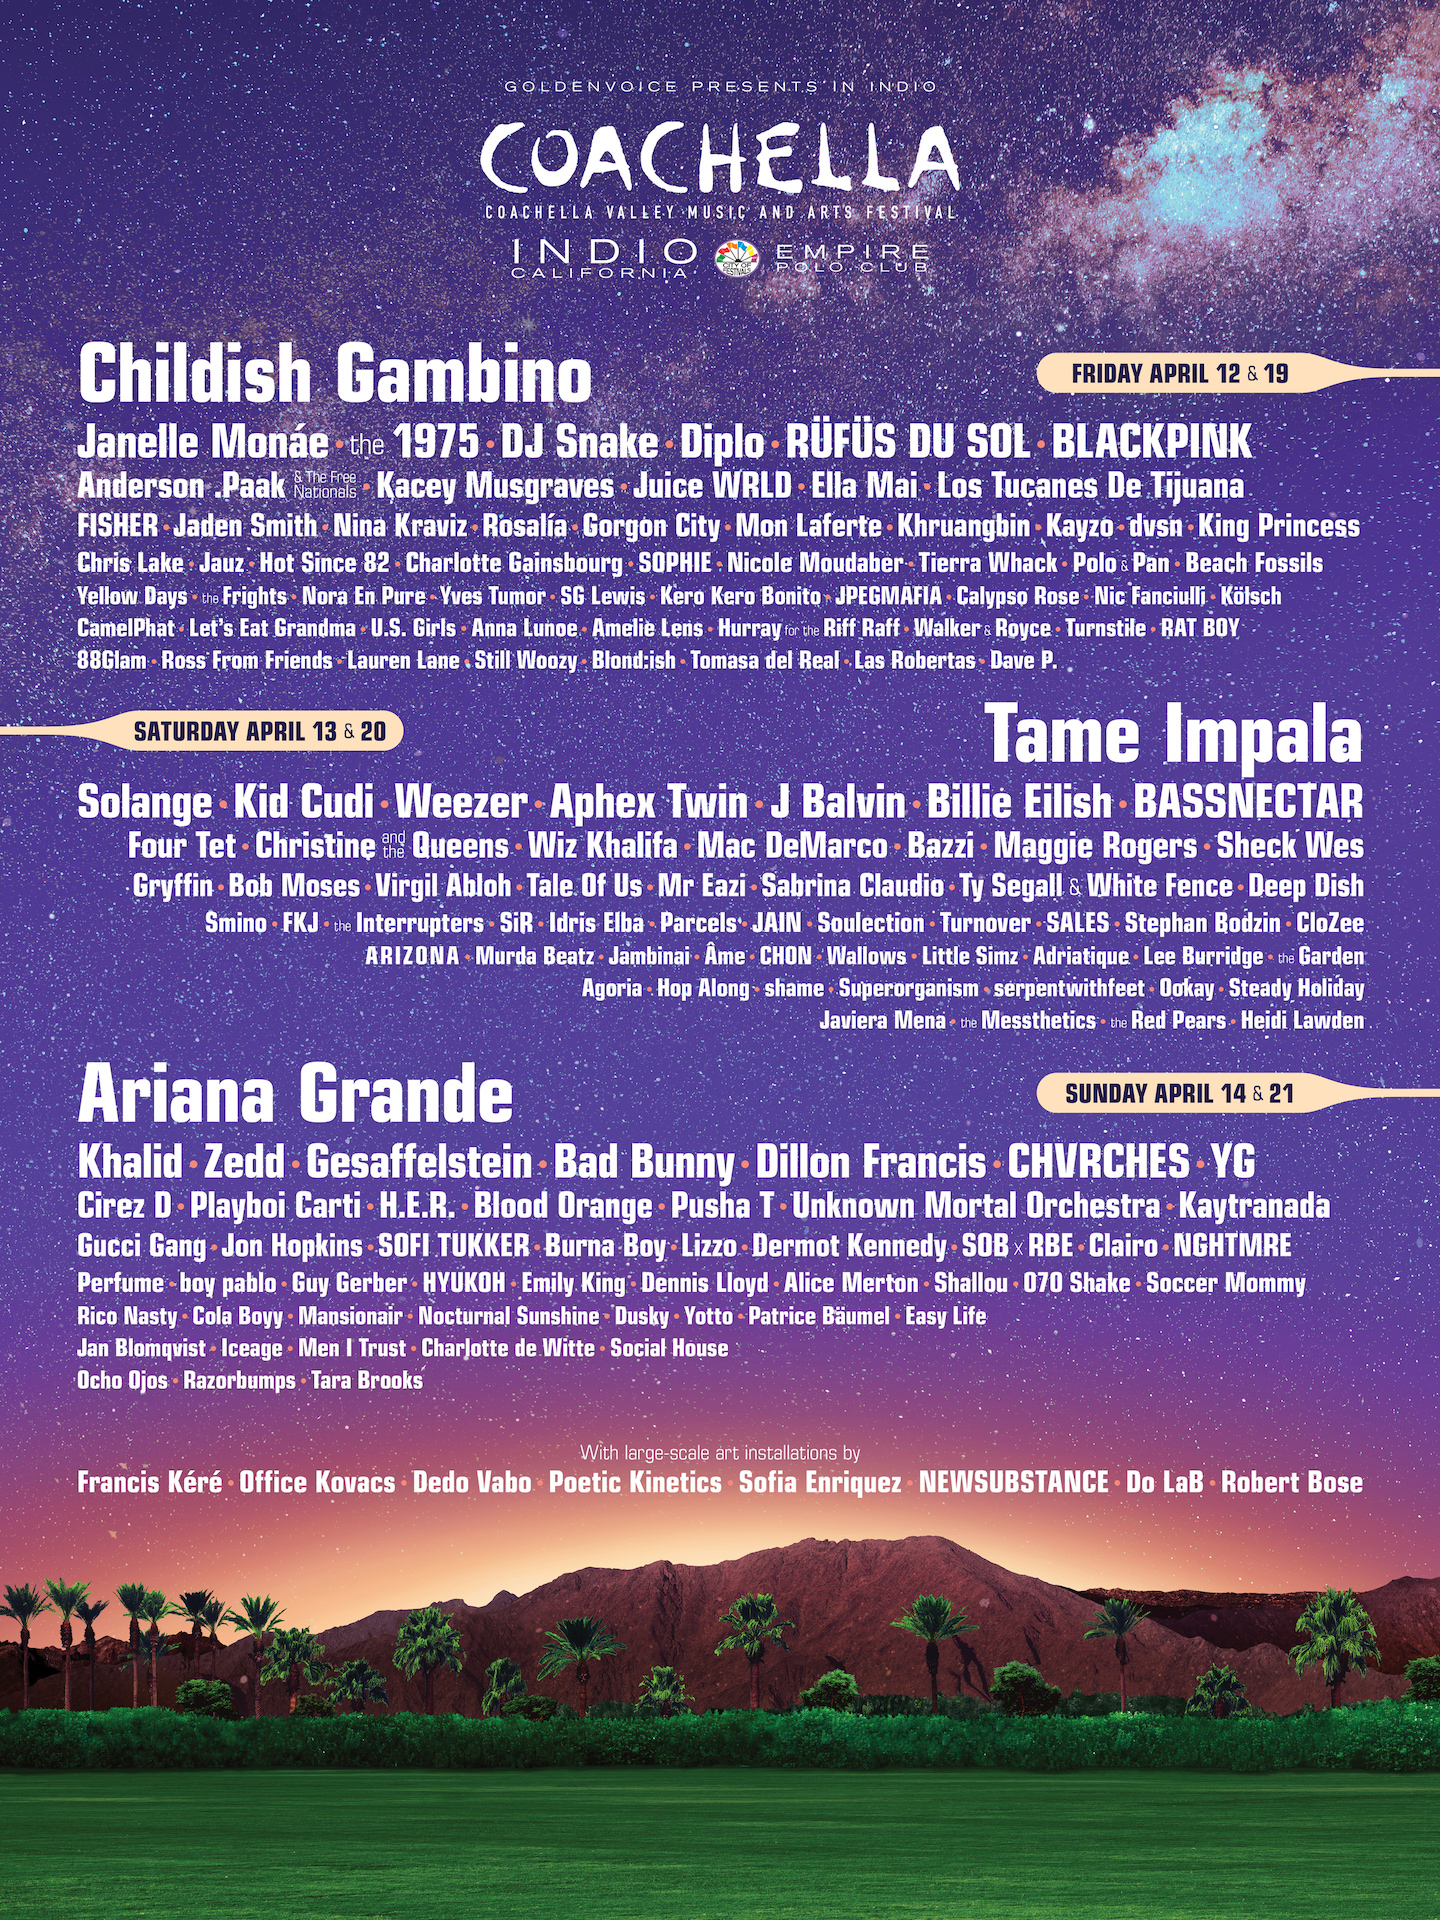 CATCH US AT… - Coachella weekend 1!